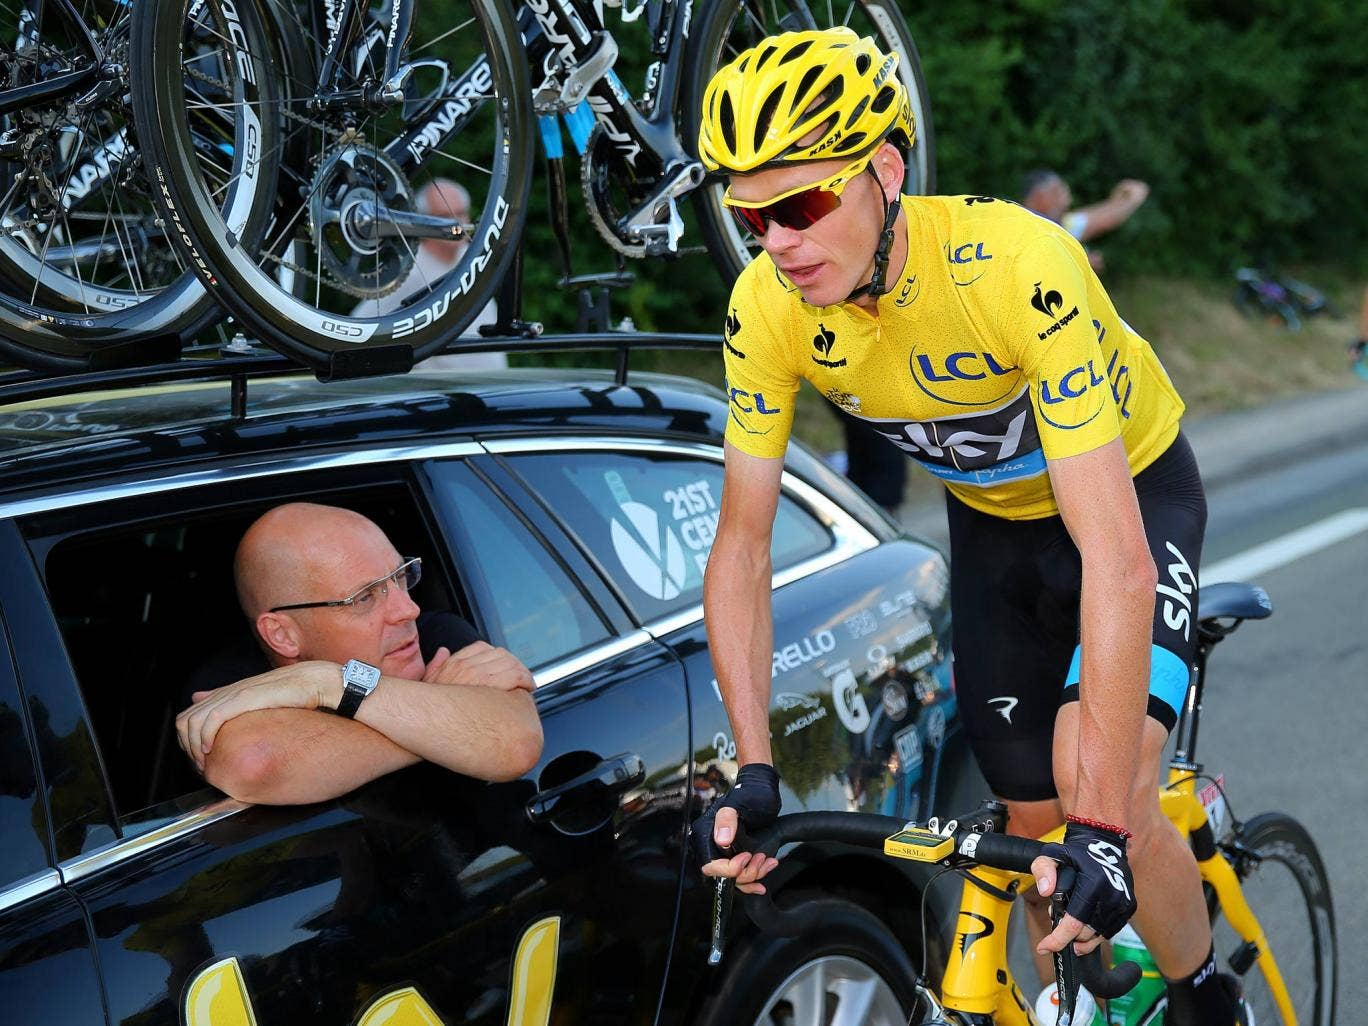 Sir Dave Brailsford speaks with the winner of the 2013 Tour de France, Chris Froome, during the final stage